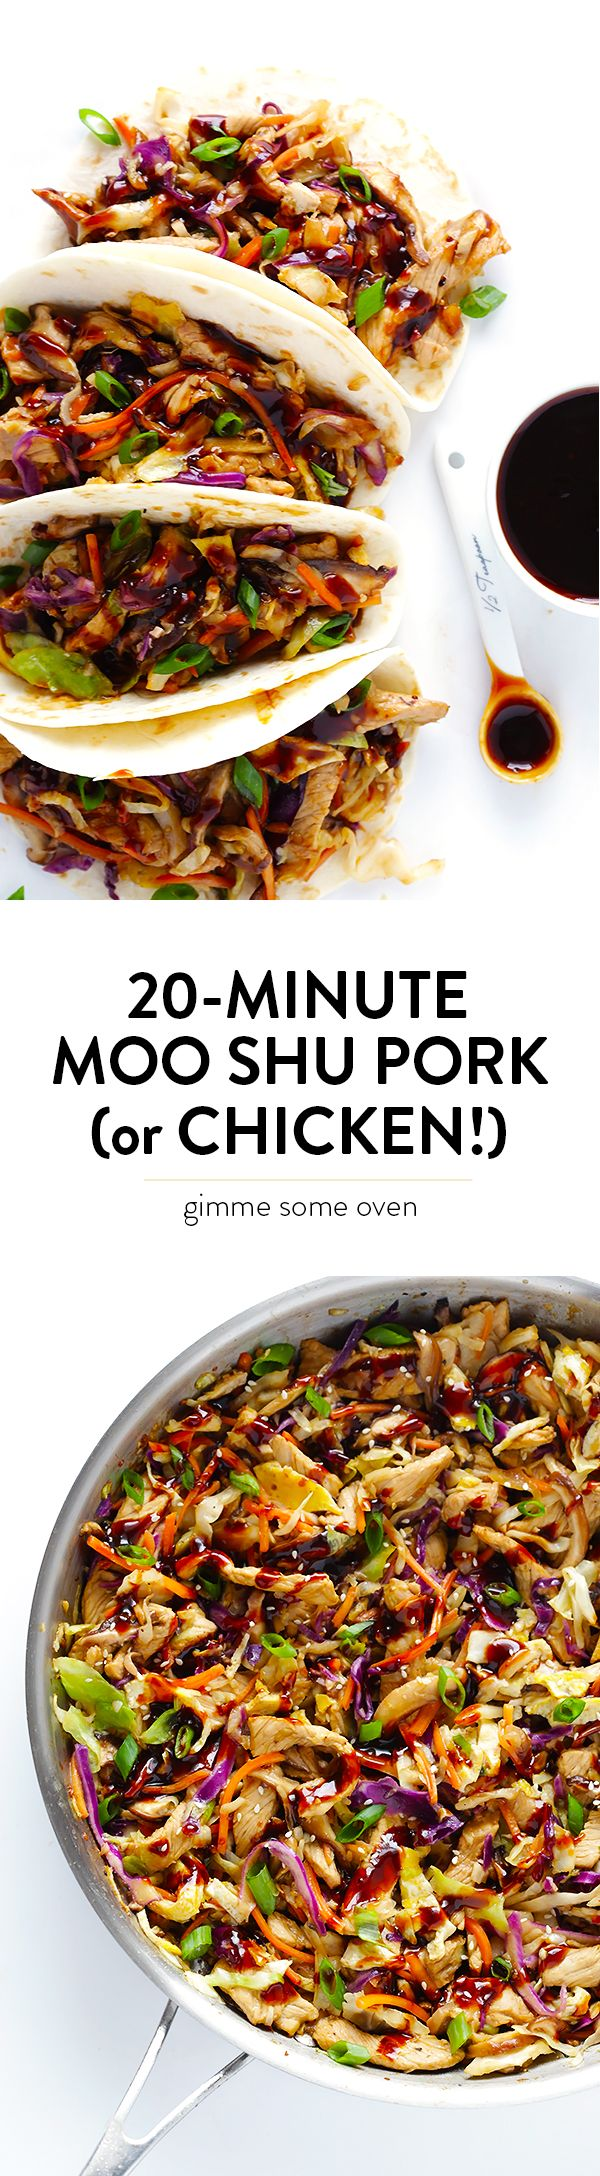 20-Minute Moo Shu Pork (or Chicken) - So easy, so fresh, and soooo good!